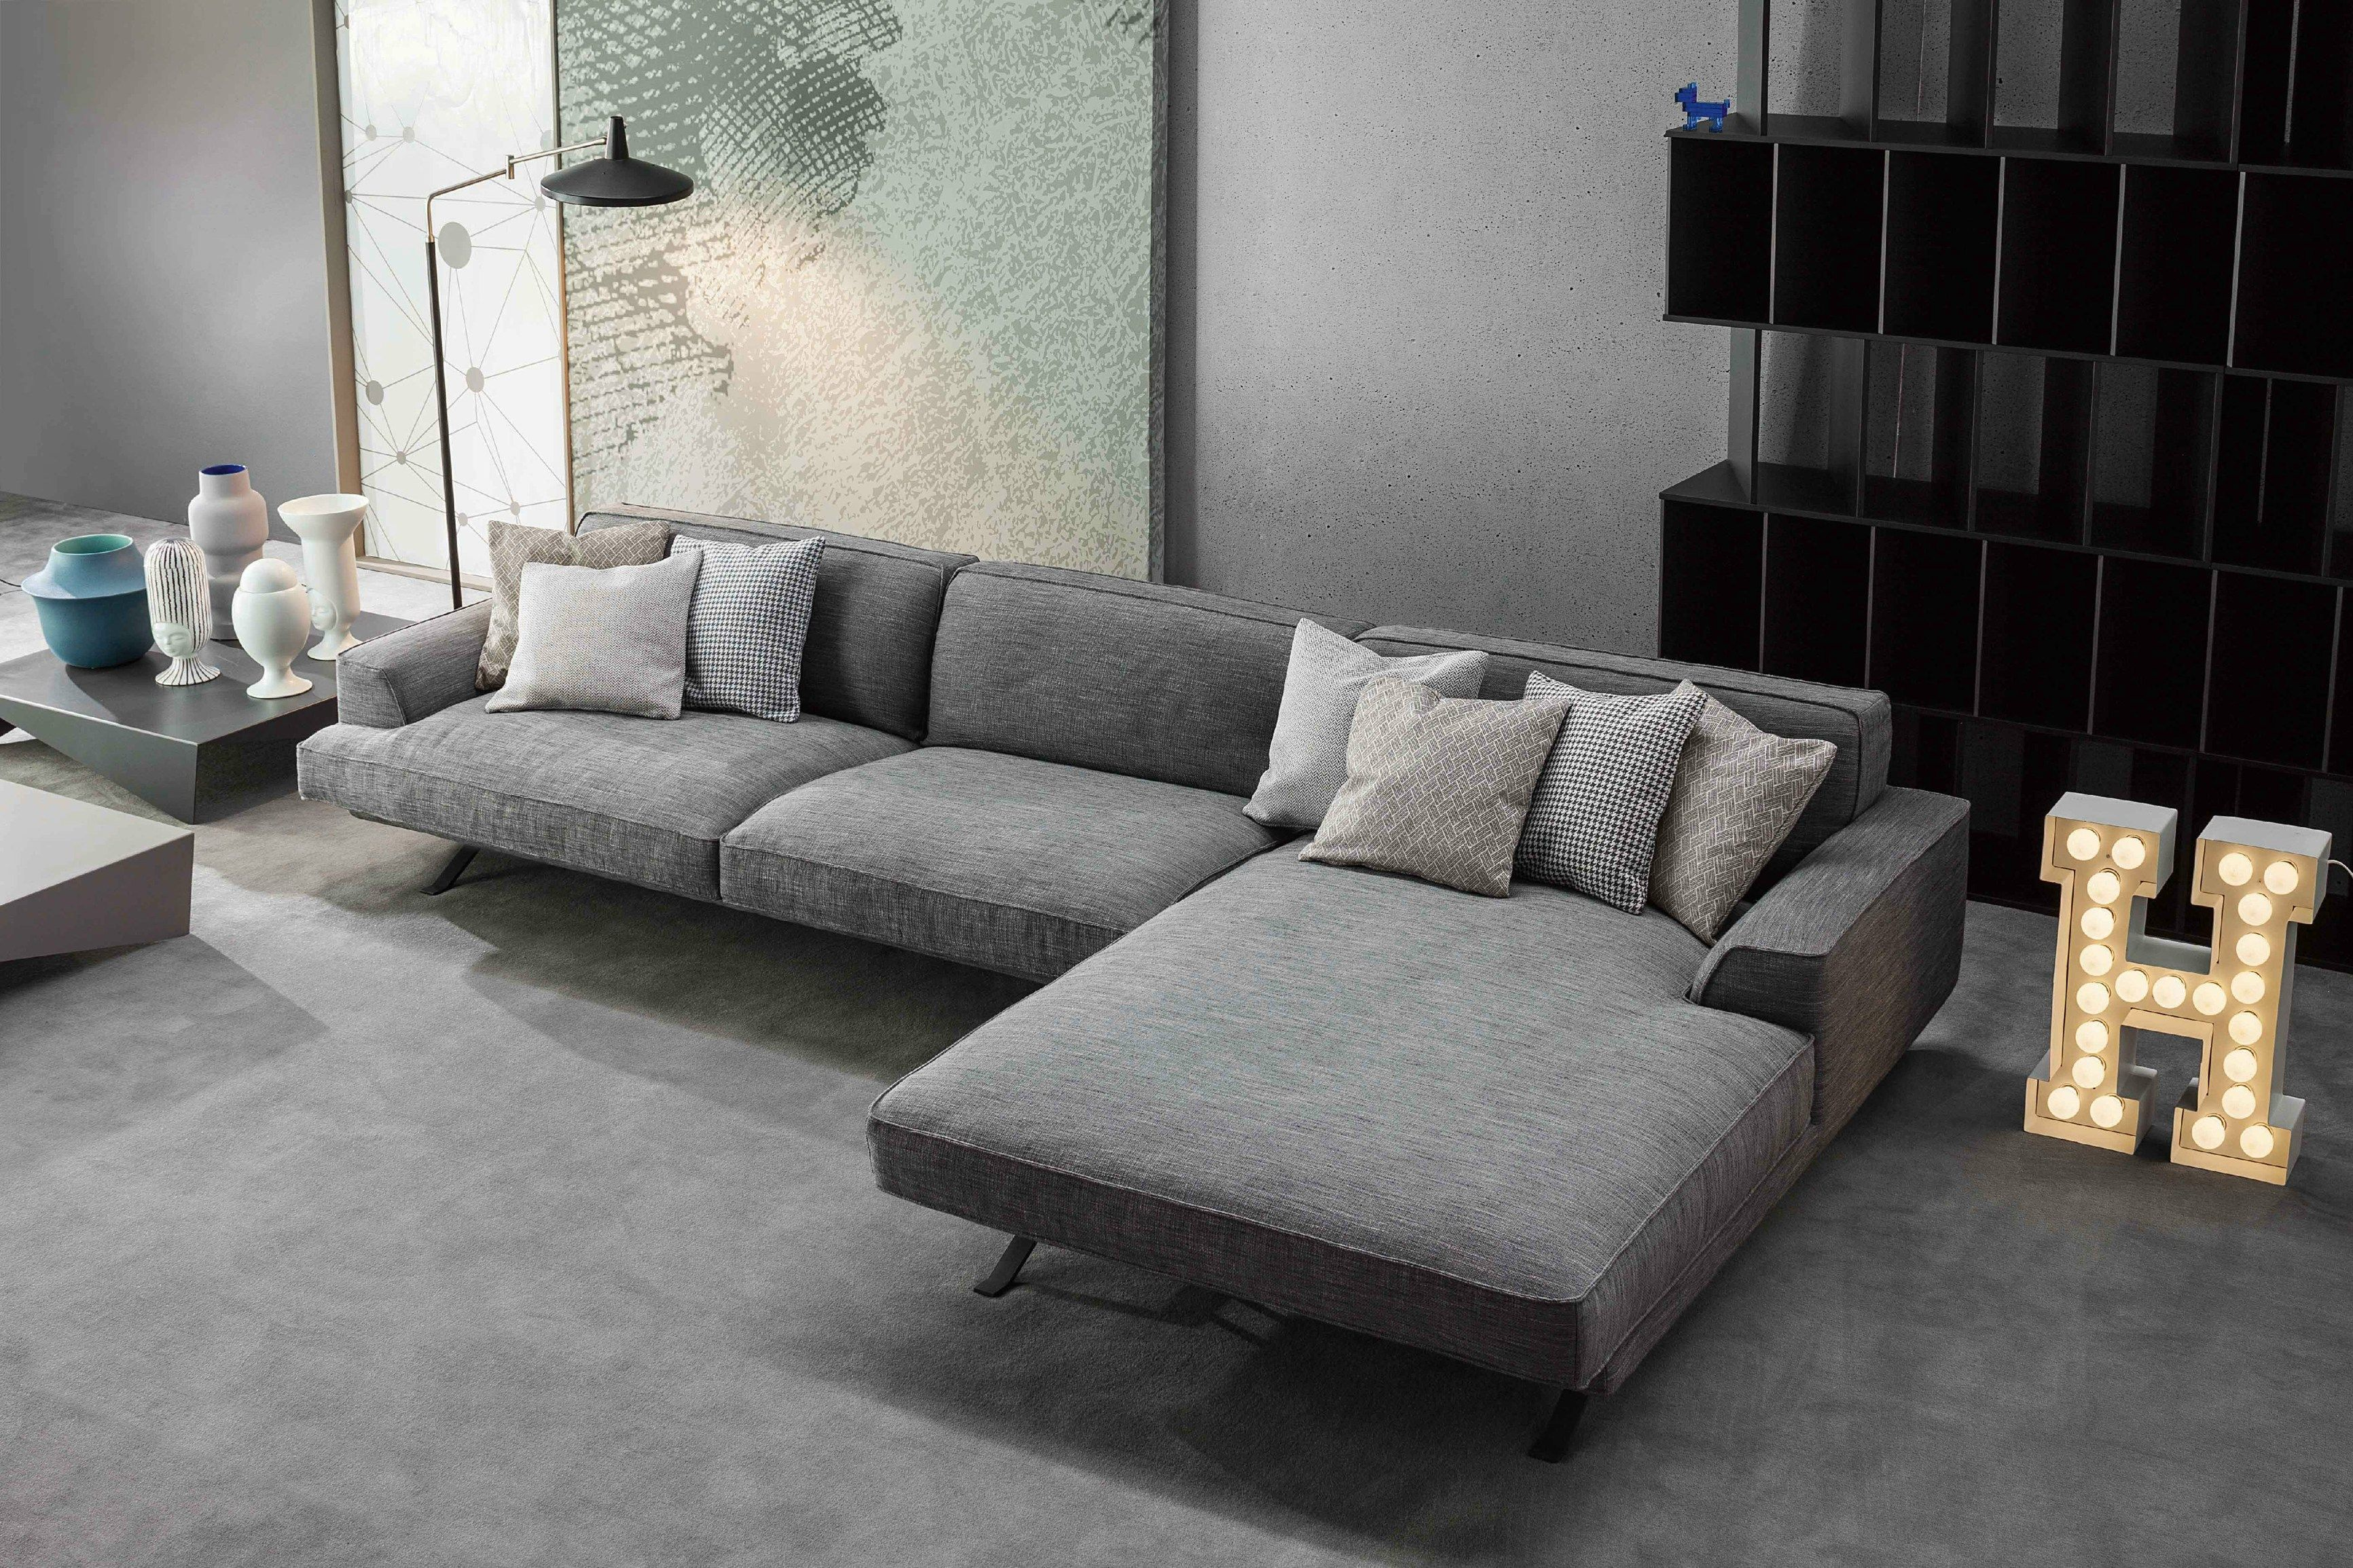 Kika Big Sofa Slab Canapé Avec Méridienne By Bonaldo Design Mauro